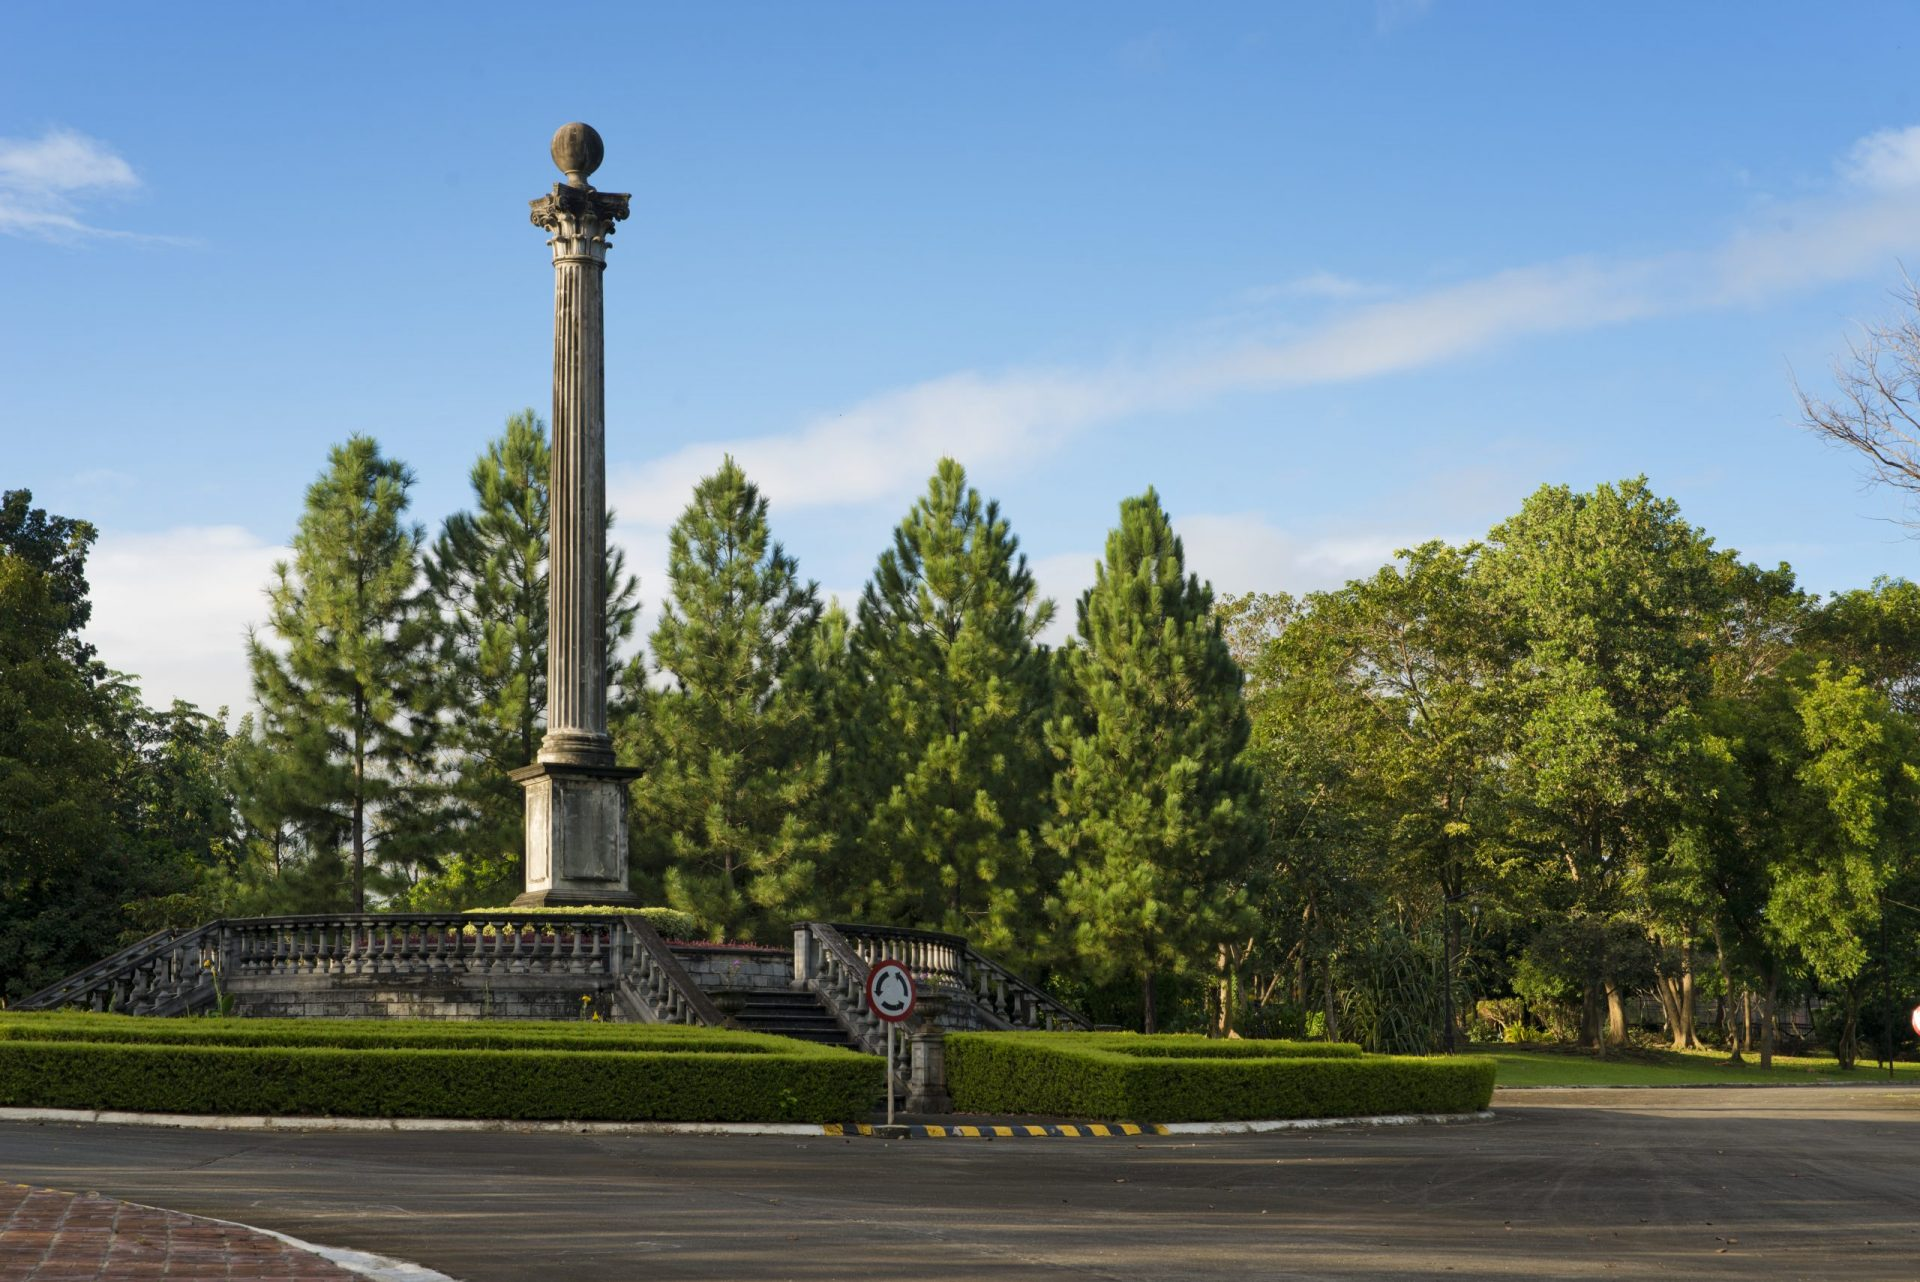 Obelisk in Brittany Promenade surrounded by lush greenery in a residential community in sta. rosa   Luxury Homes by Brittany Corporation